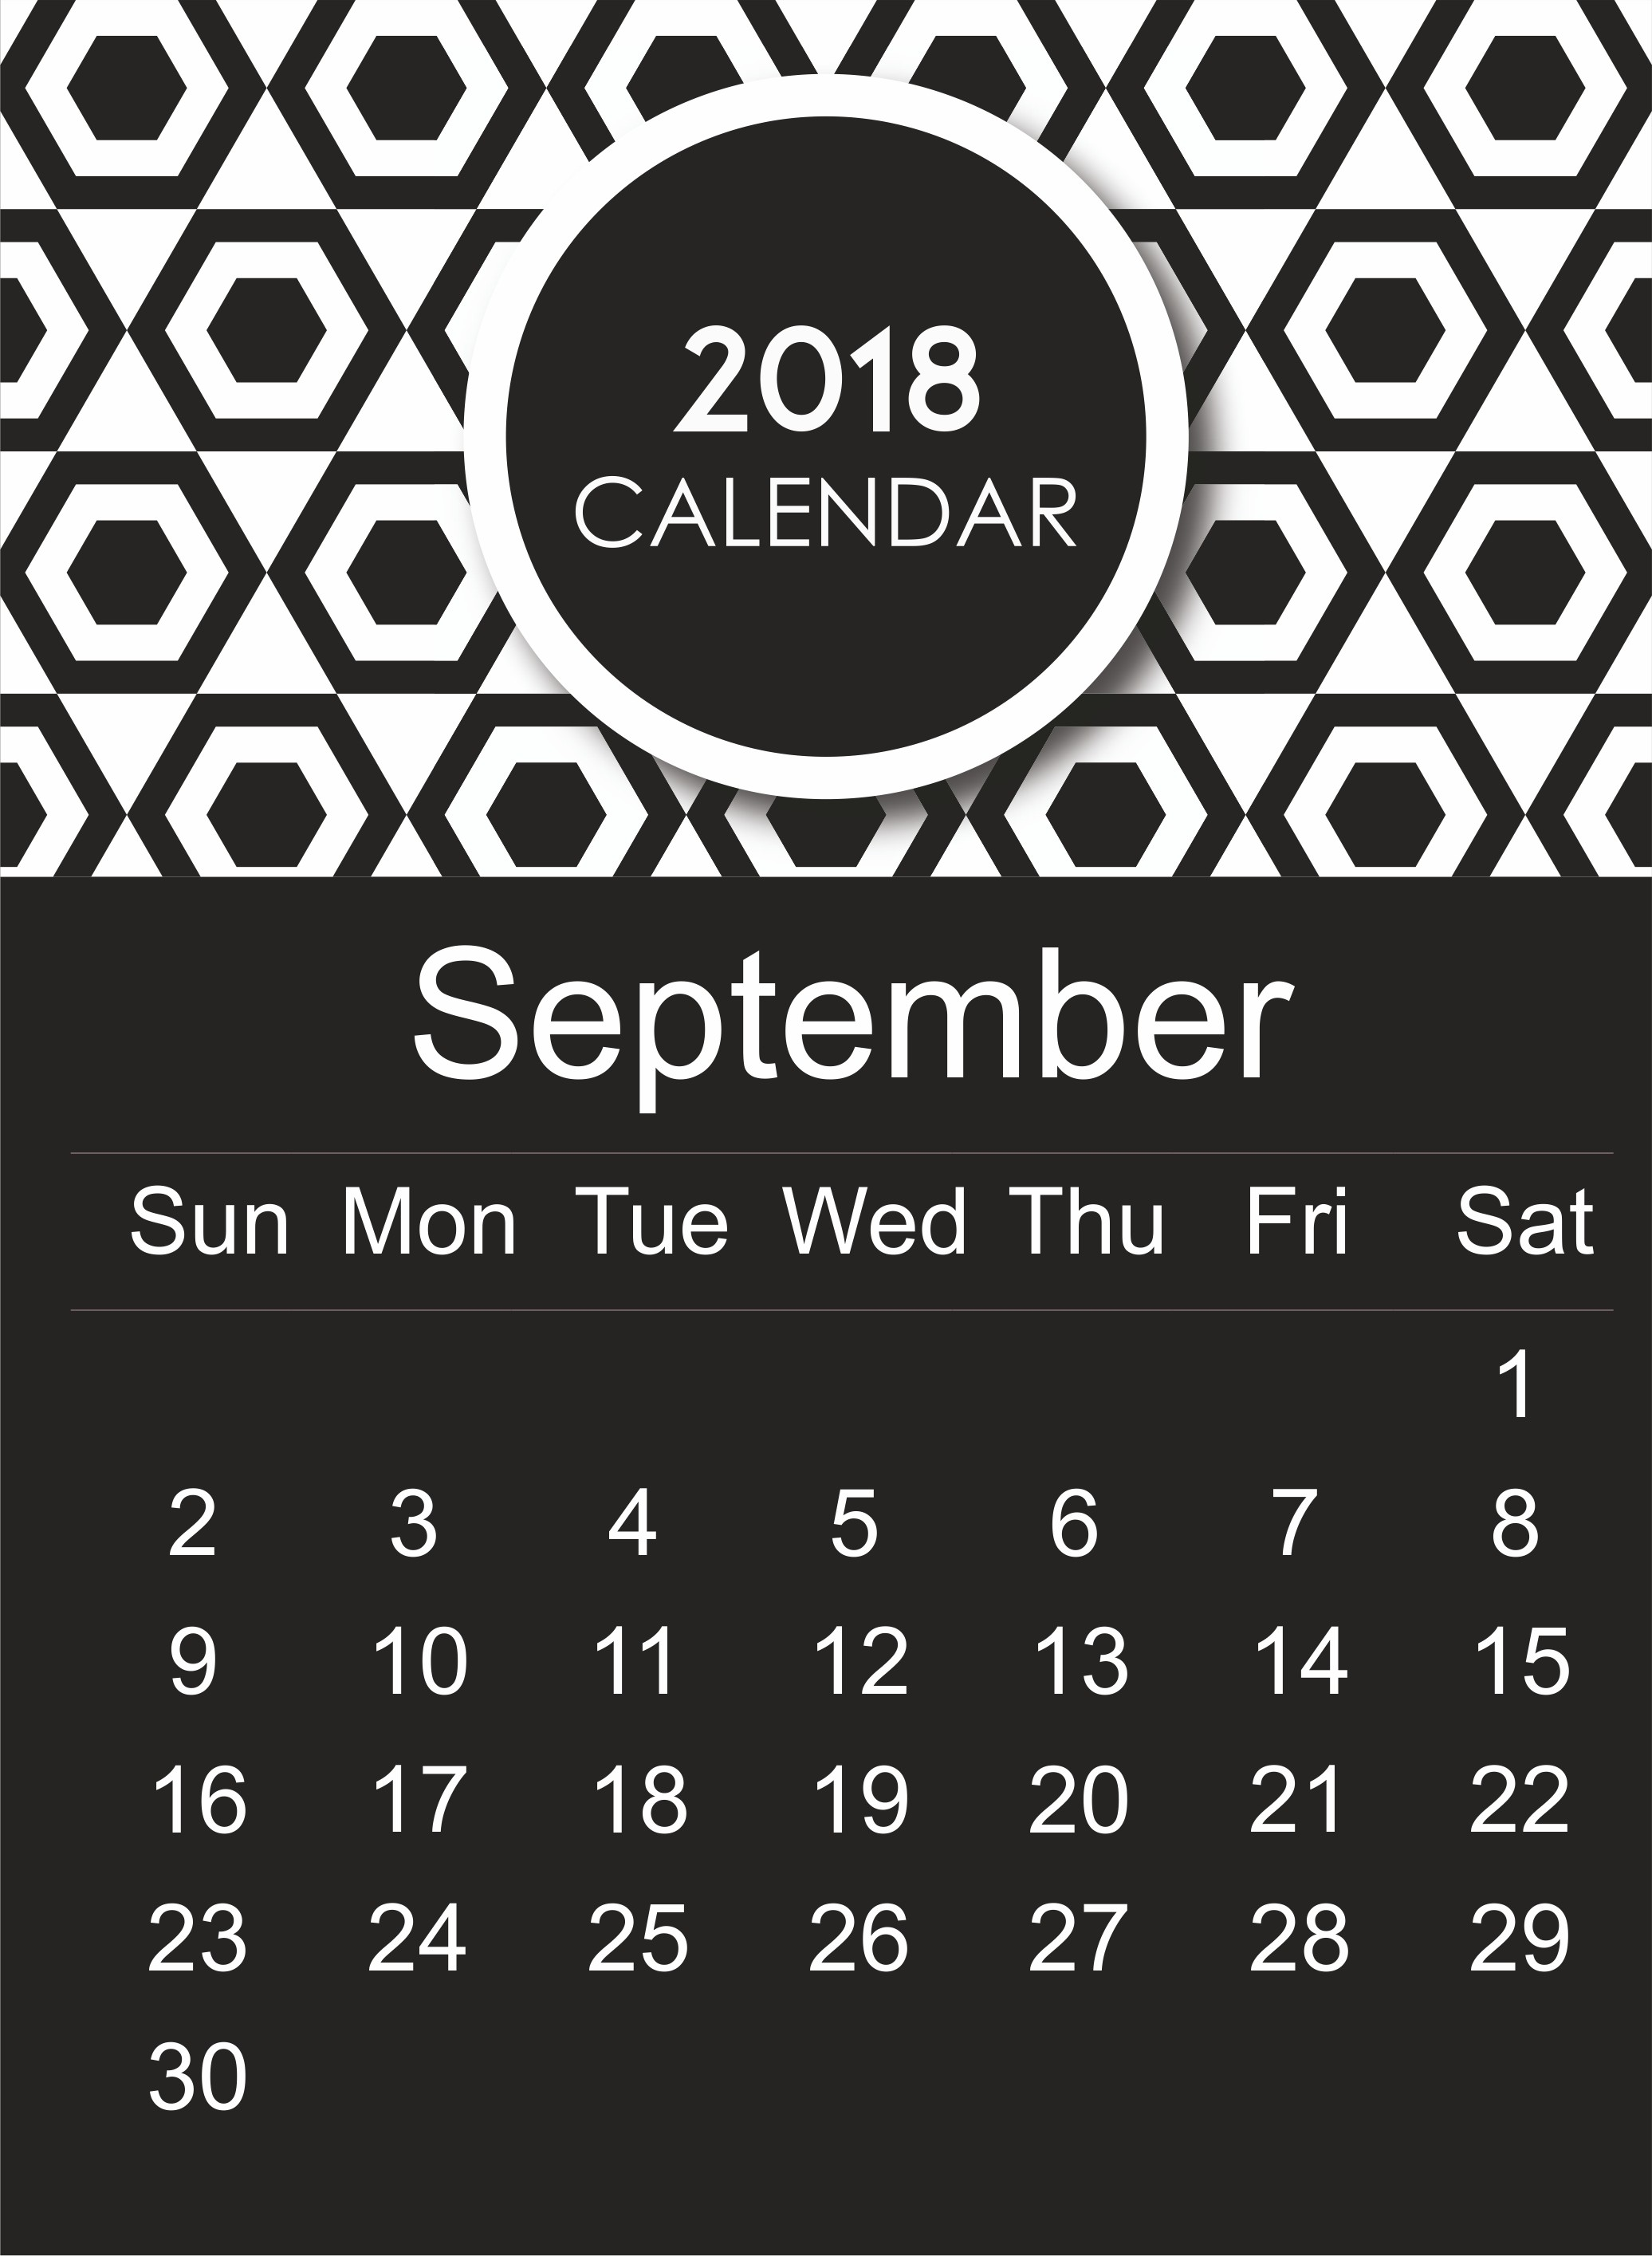 Calendar 2019 Excel Indonesia Mejores Y Más Novedosos Download Free Printable September 2018 Full Moon Calendar Of Calendar 2019 Excel Indonesia Mejores Y Más Novedosos Download Free Printable September 2018 Full Moon Calendar